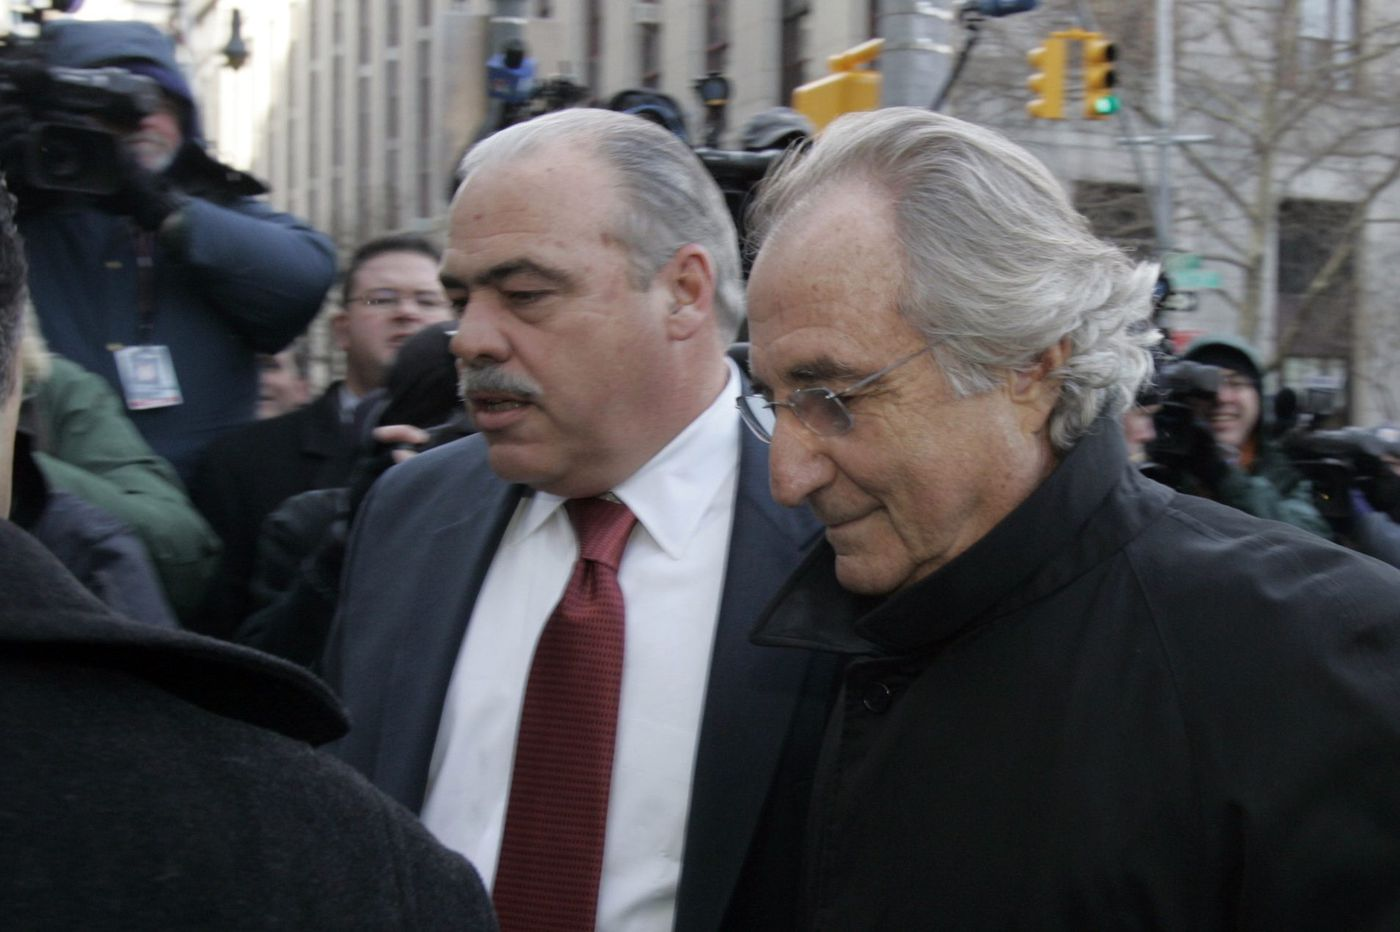 A decade after Bernie Madoff's arrest, FBI agents reveal more about his Ponzi scheme